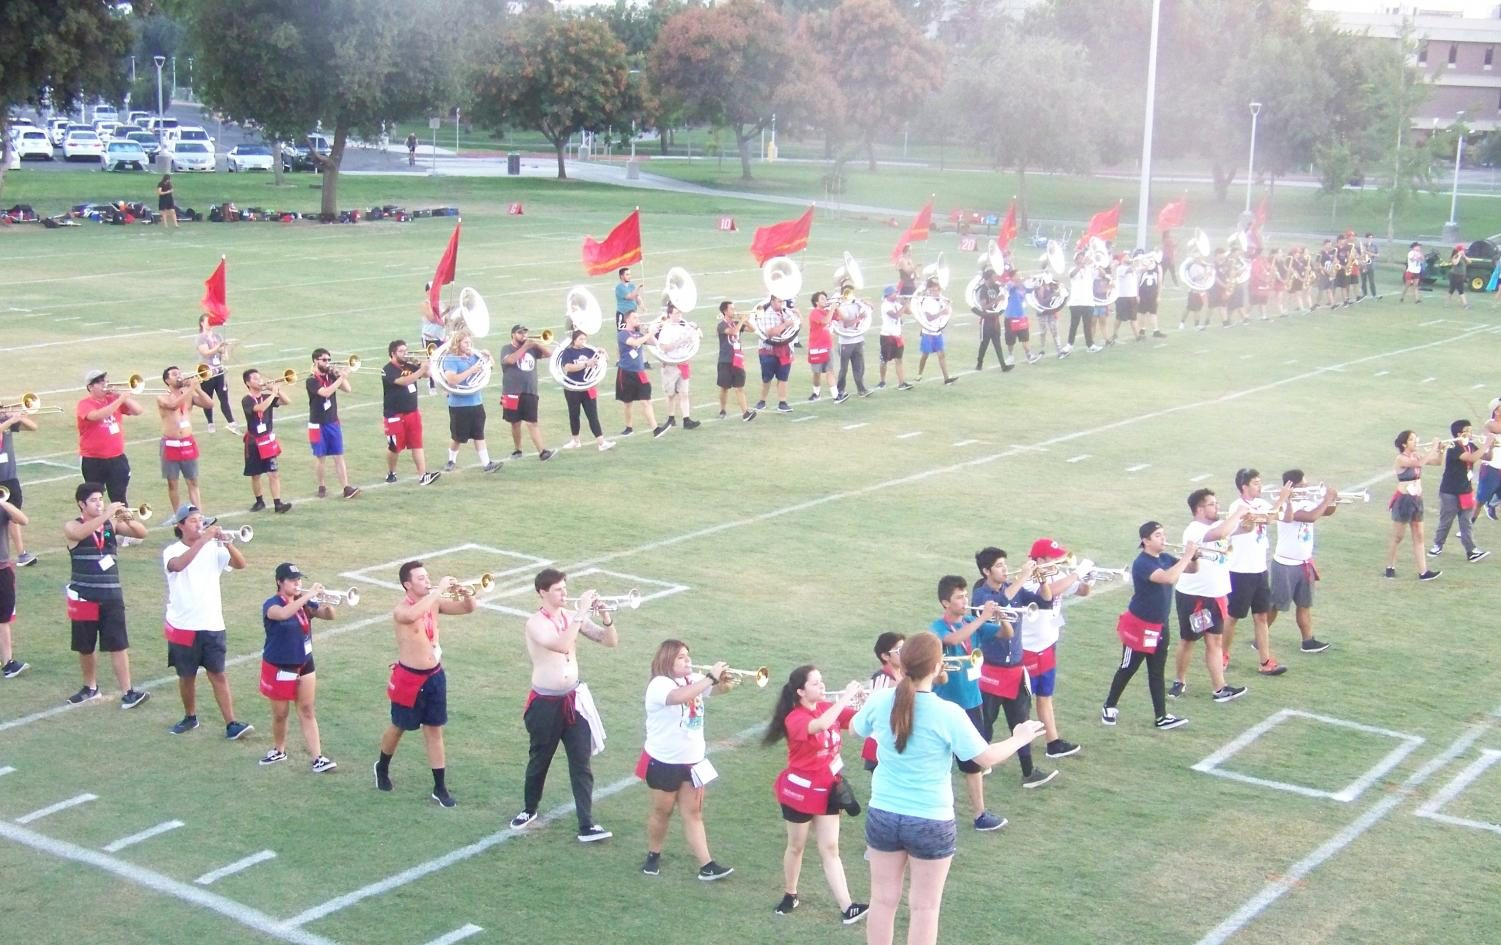 Fresno State marching band practices their formations at the Fresno State practice field on Saturday, Aug. 18, 2018